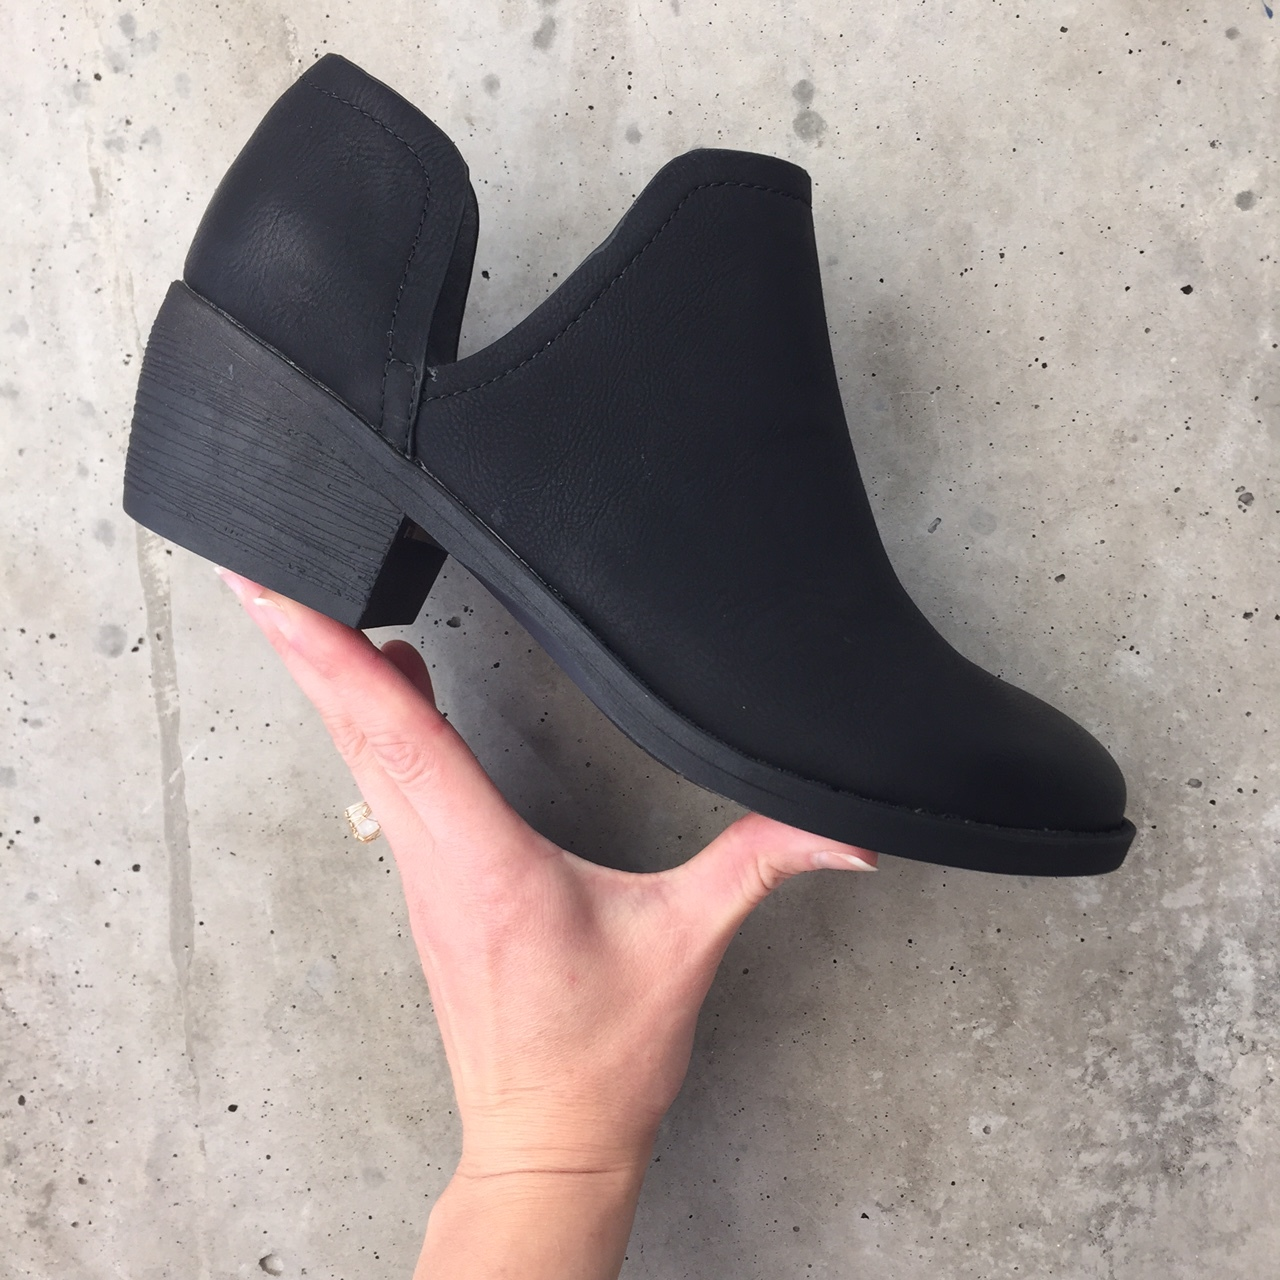 Perfect for a night out sans stiletto injuries, these BC booties will go with any outfit this season.